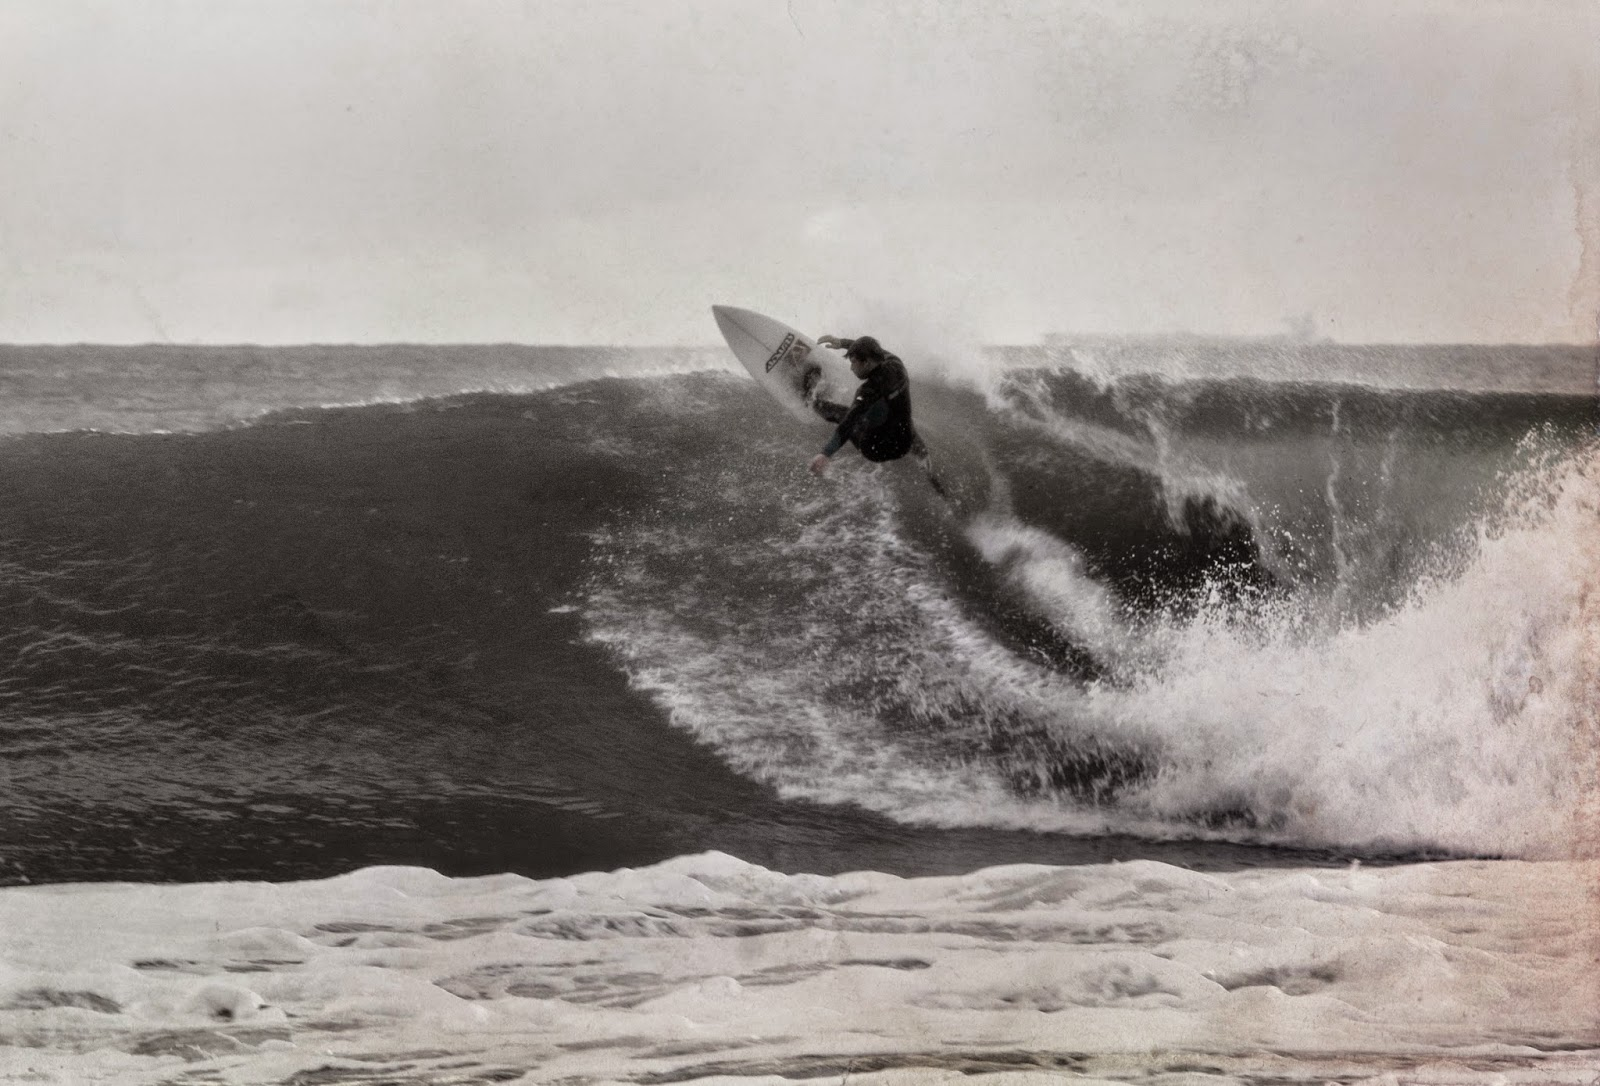 Surfing, Re-entry, Porthleven, Surf, Cornwall